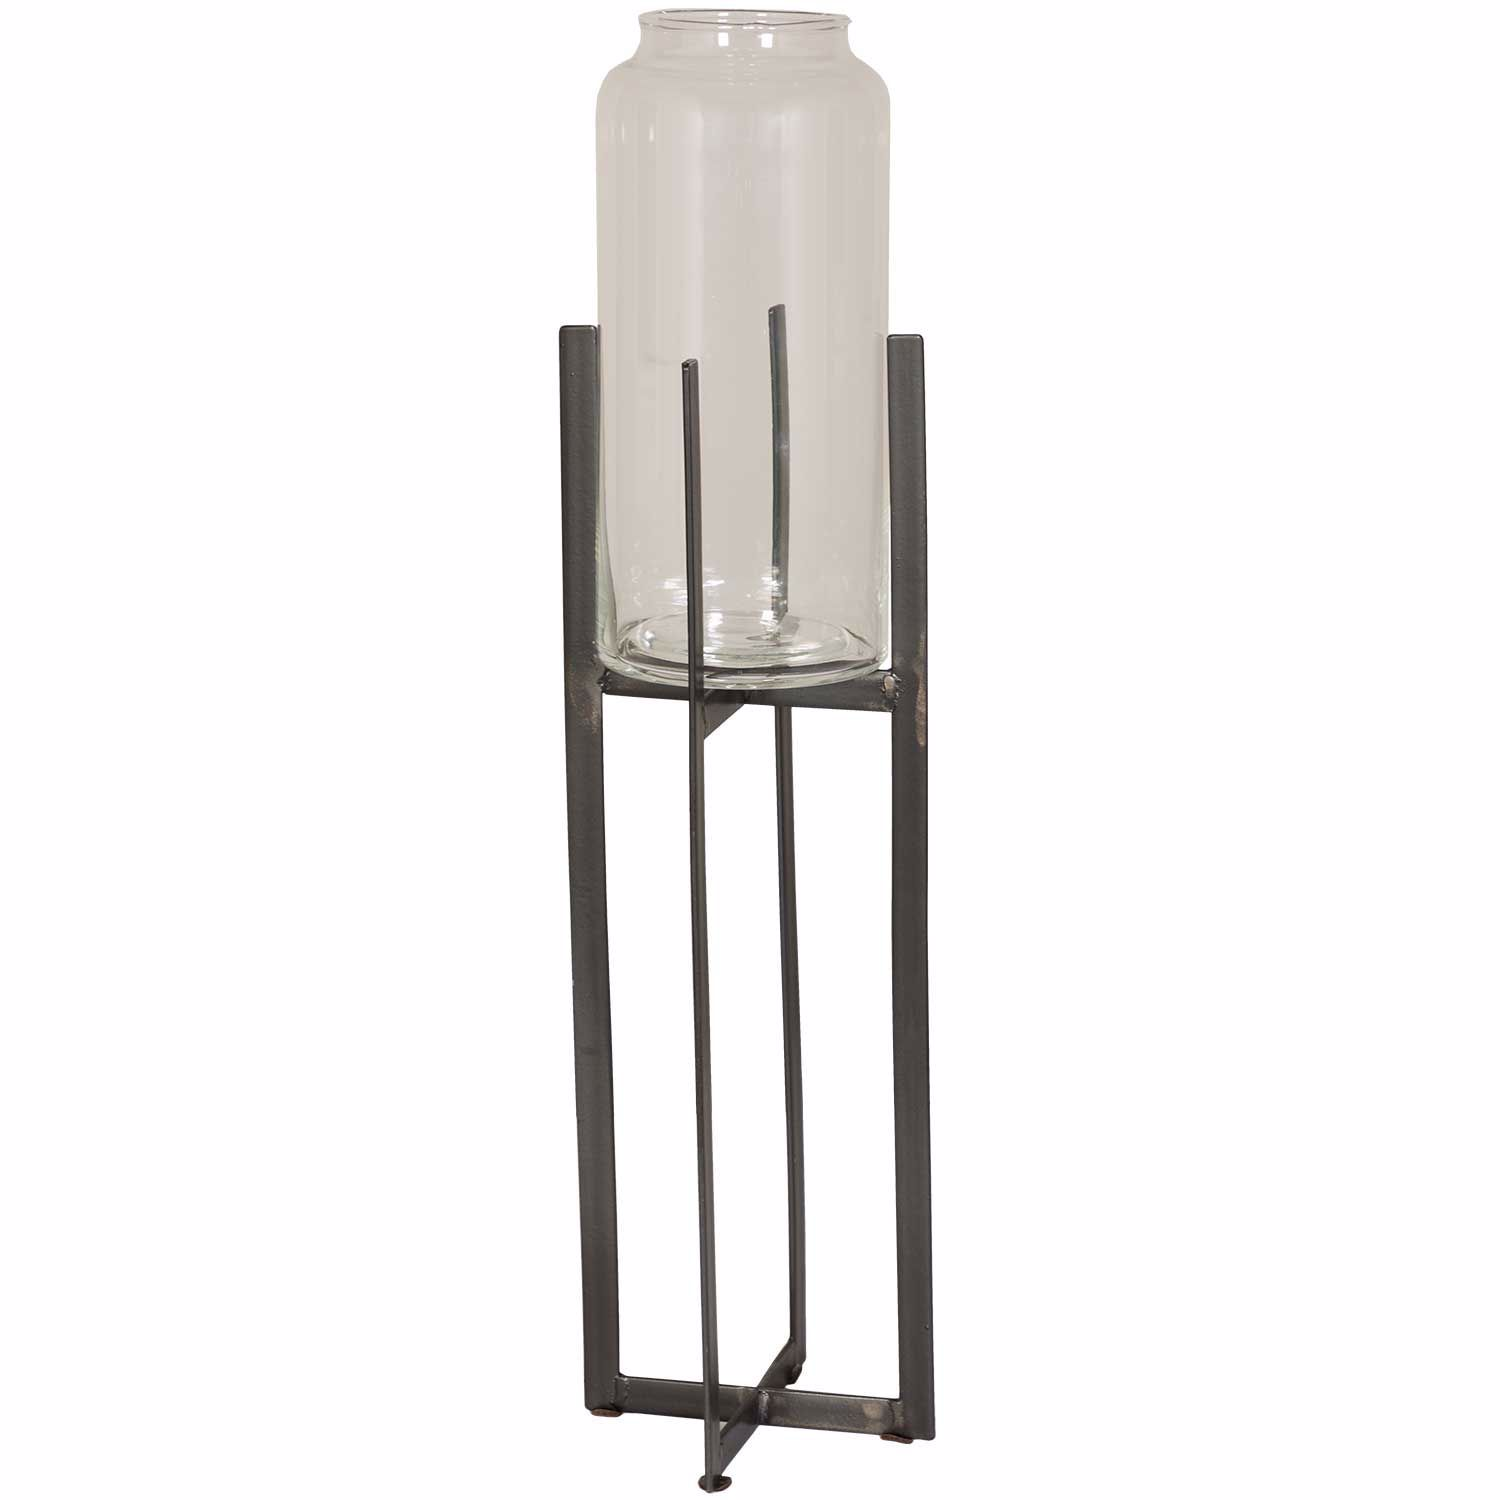 Picture of Glass Holder on Metal Stand